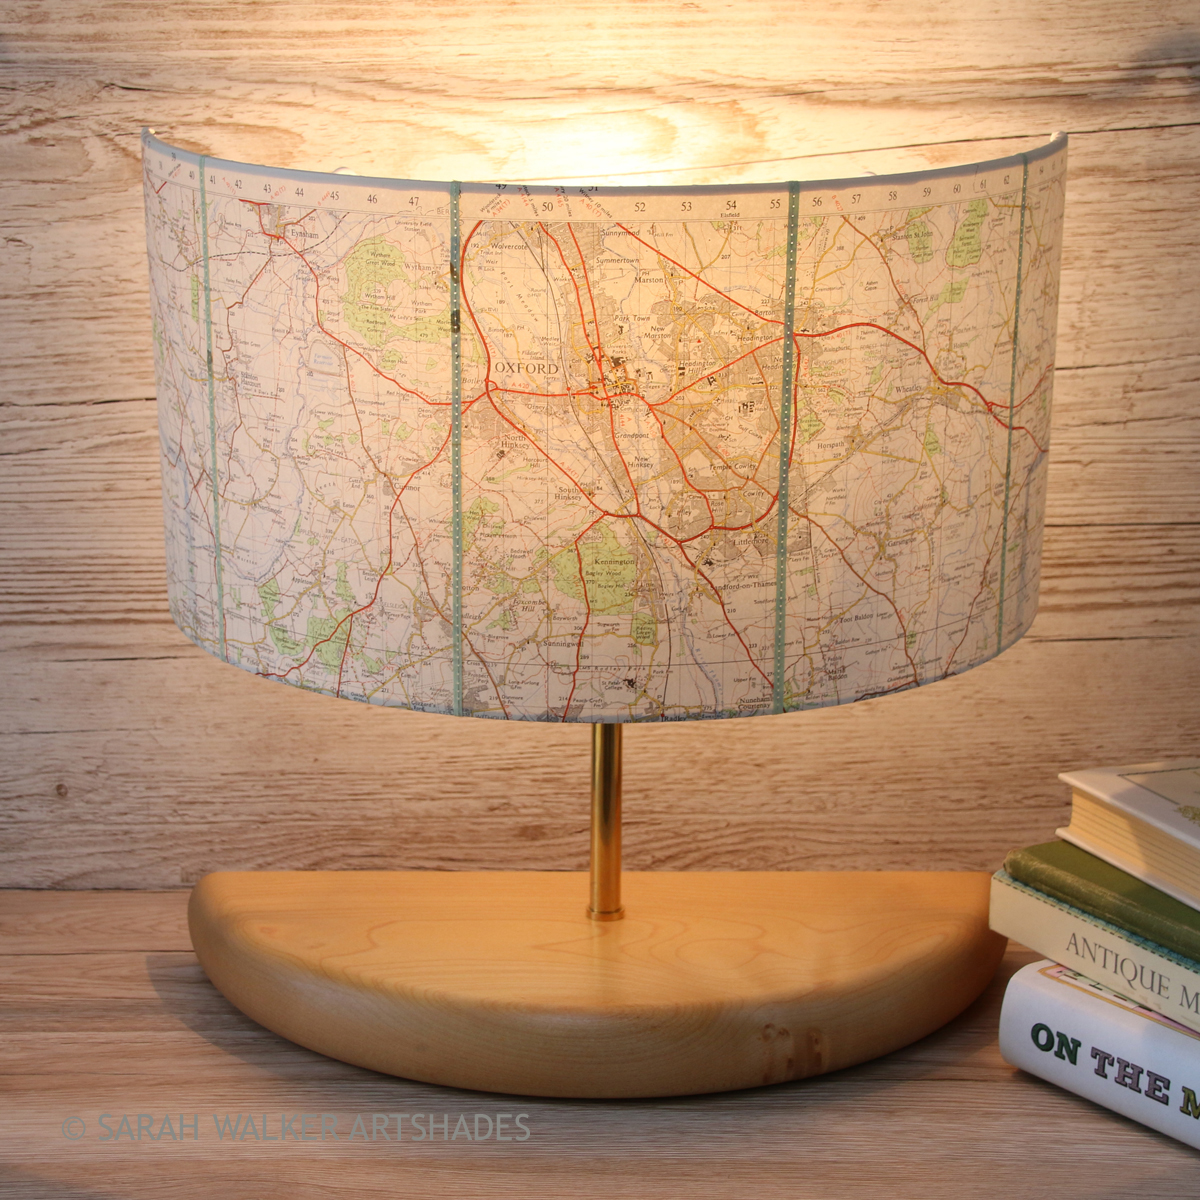 Map shade table lamps sarah walker artshades oxford map wide vintage oxford map wide slim table lamp aloadofball Choice Image